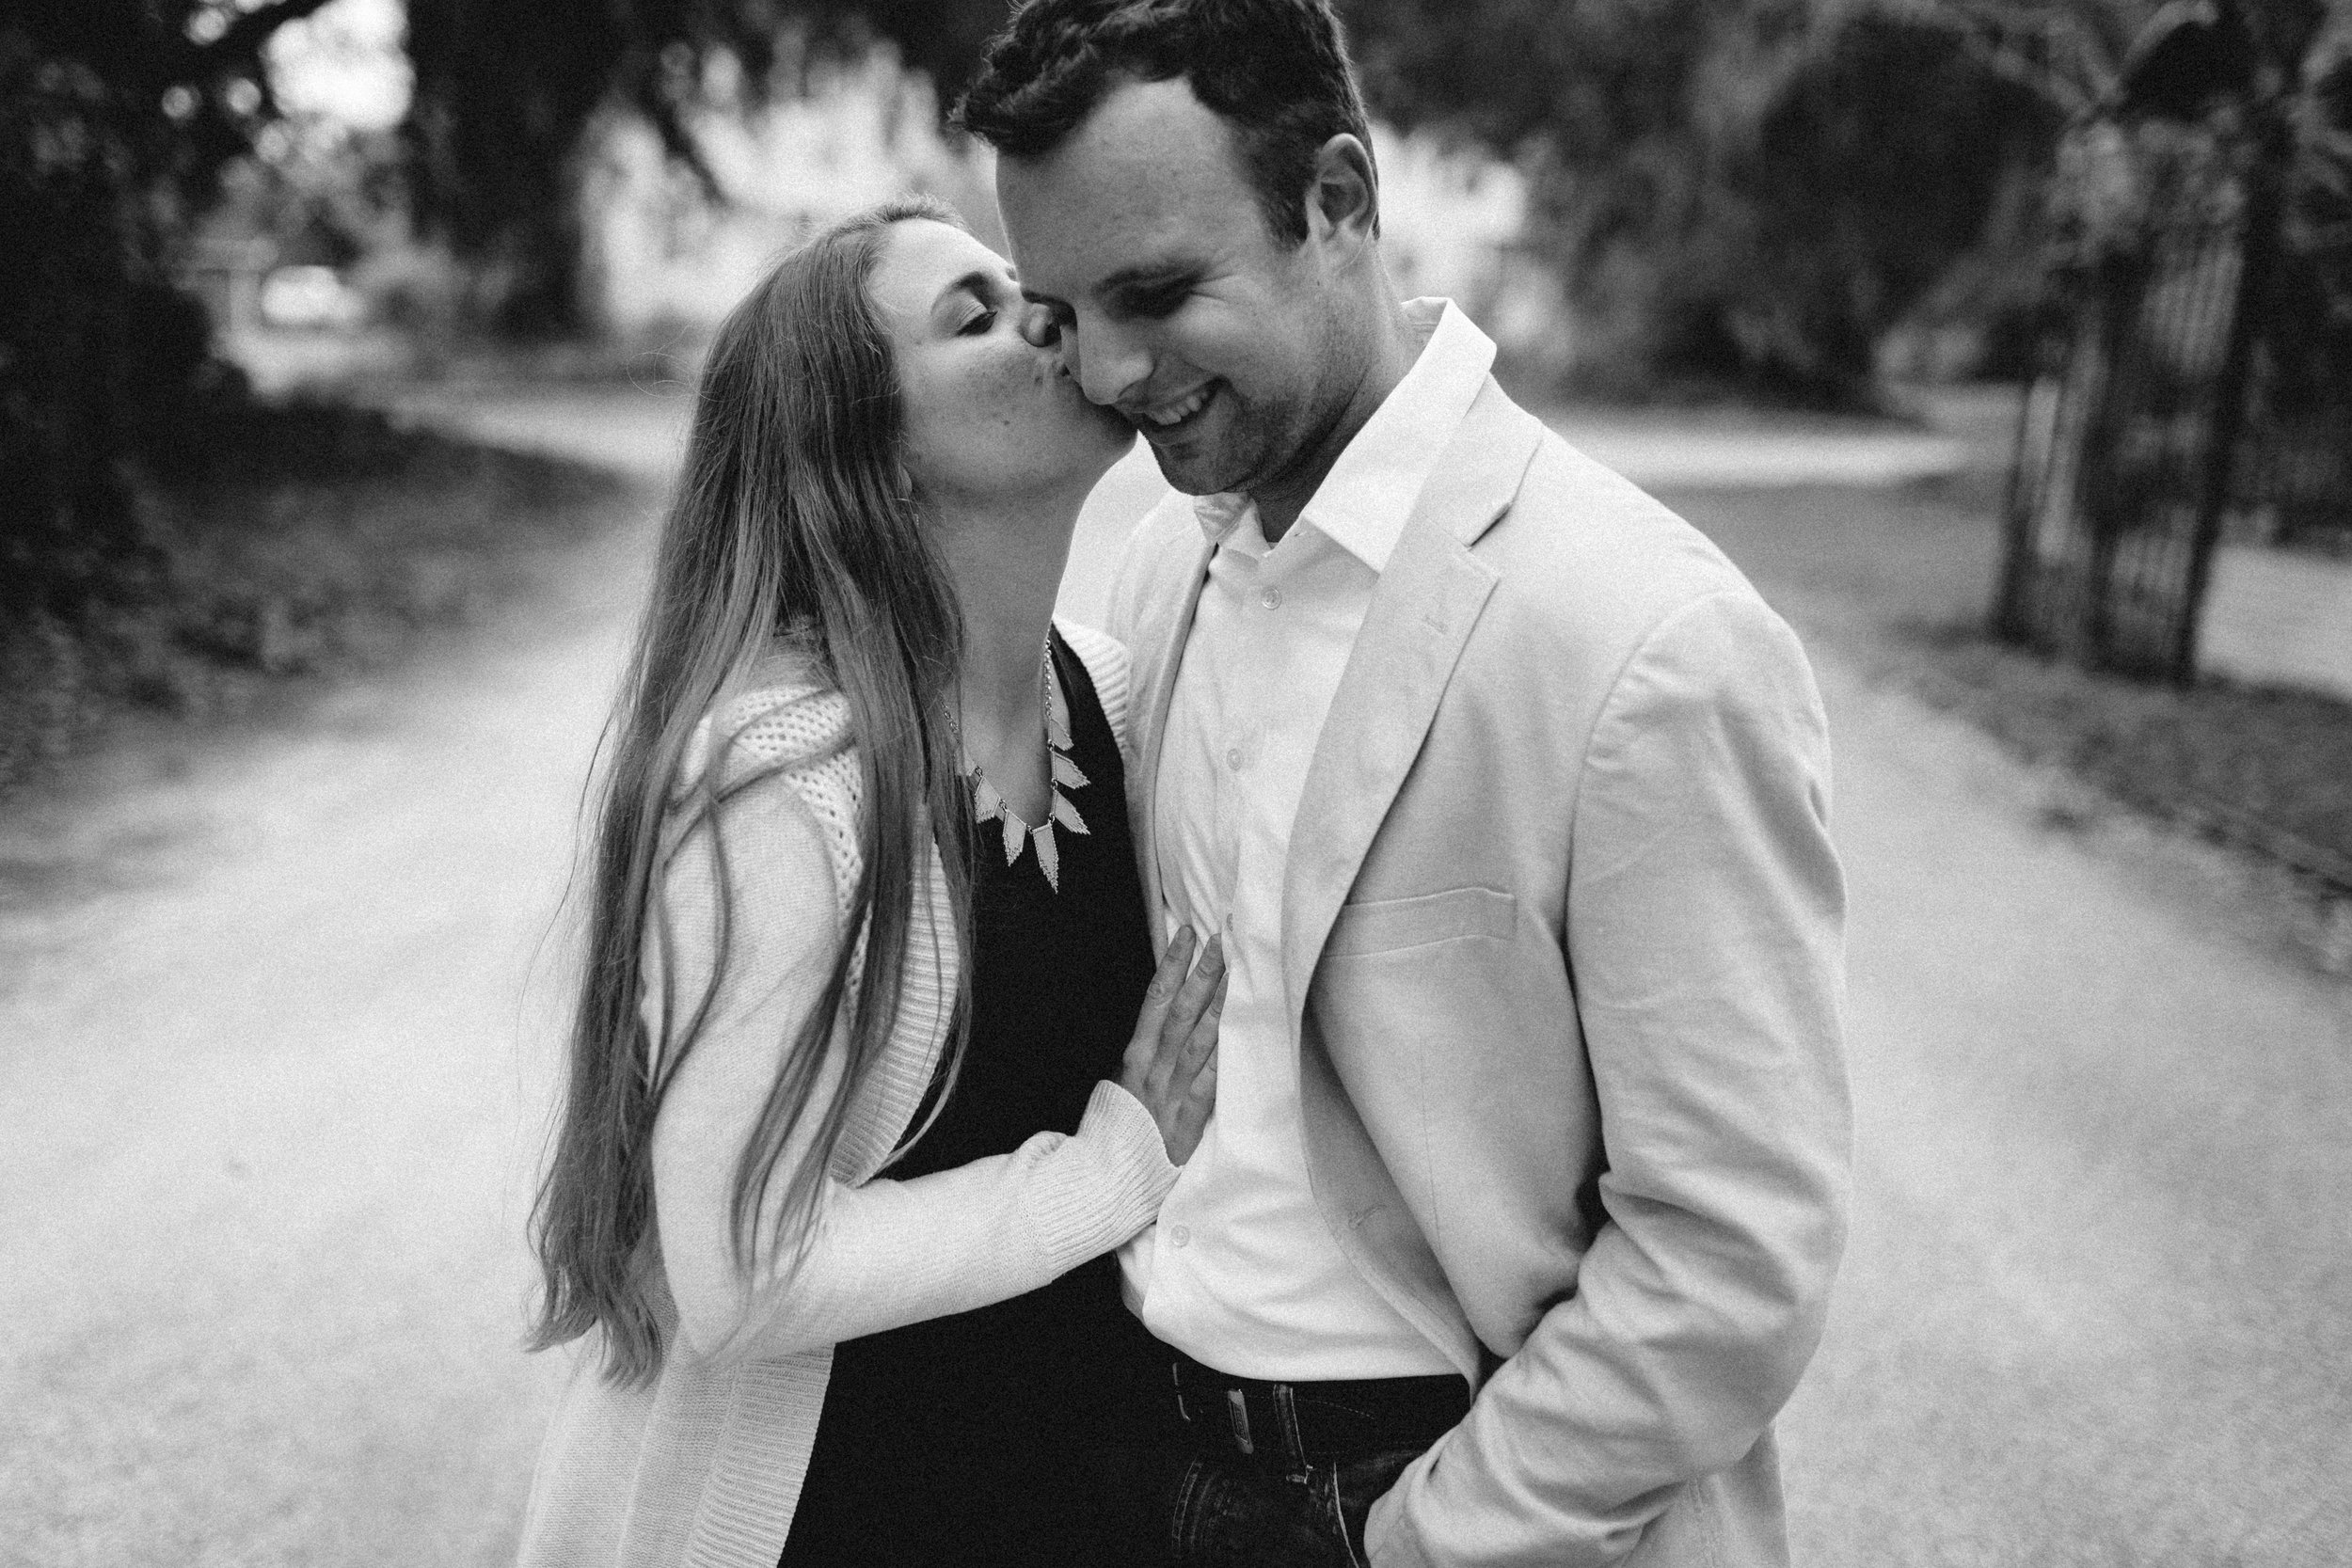 ShadowShinePictures-RachelDavid-Eudy-Engagement-Photography-417.jpg